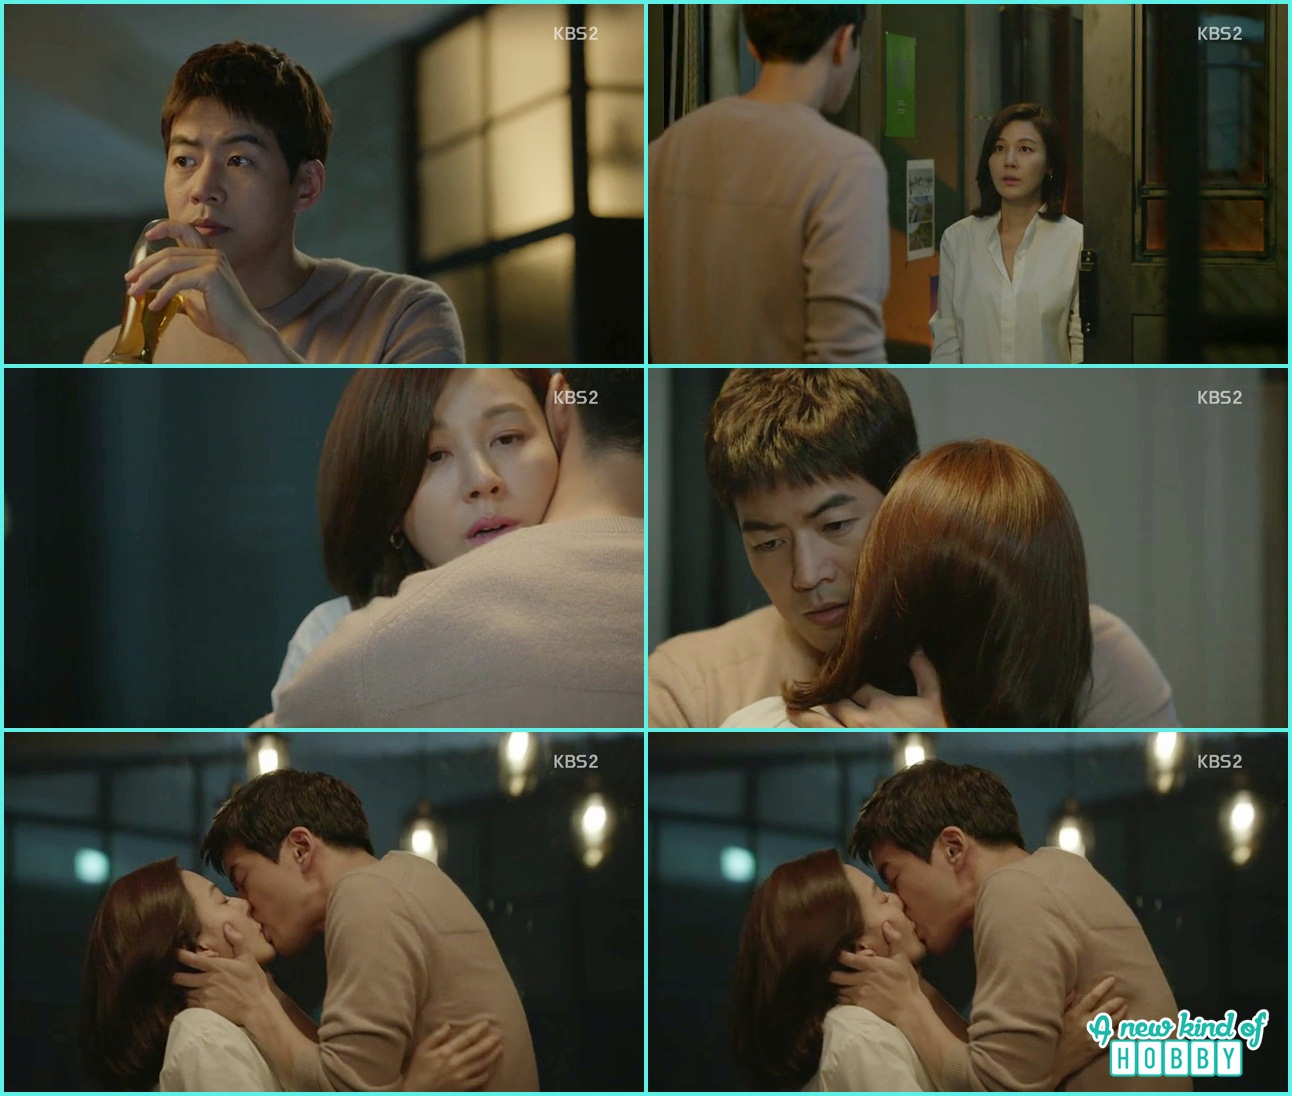 Late Night Romantic Kiss - On The way to the Airport - Ep 8 (Our